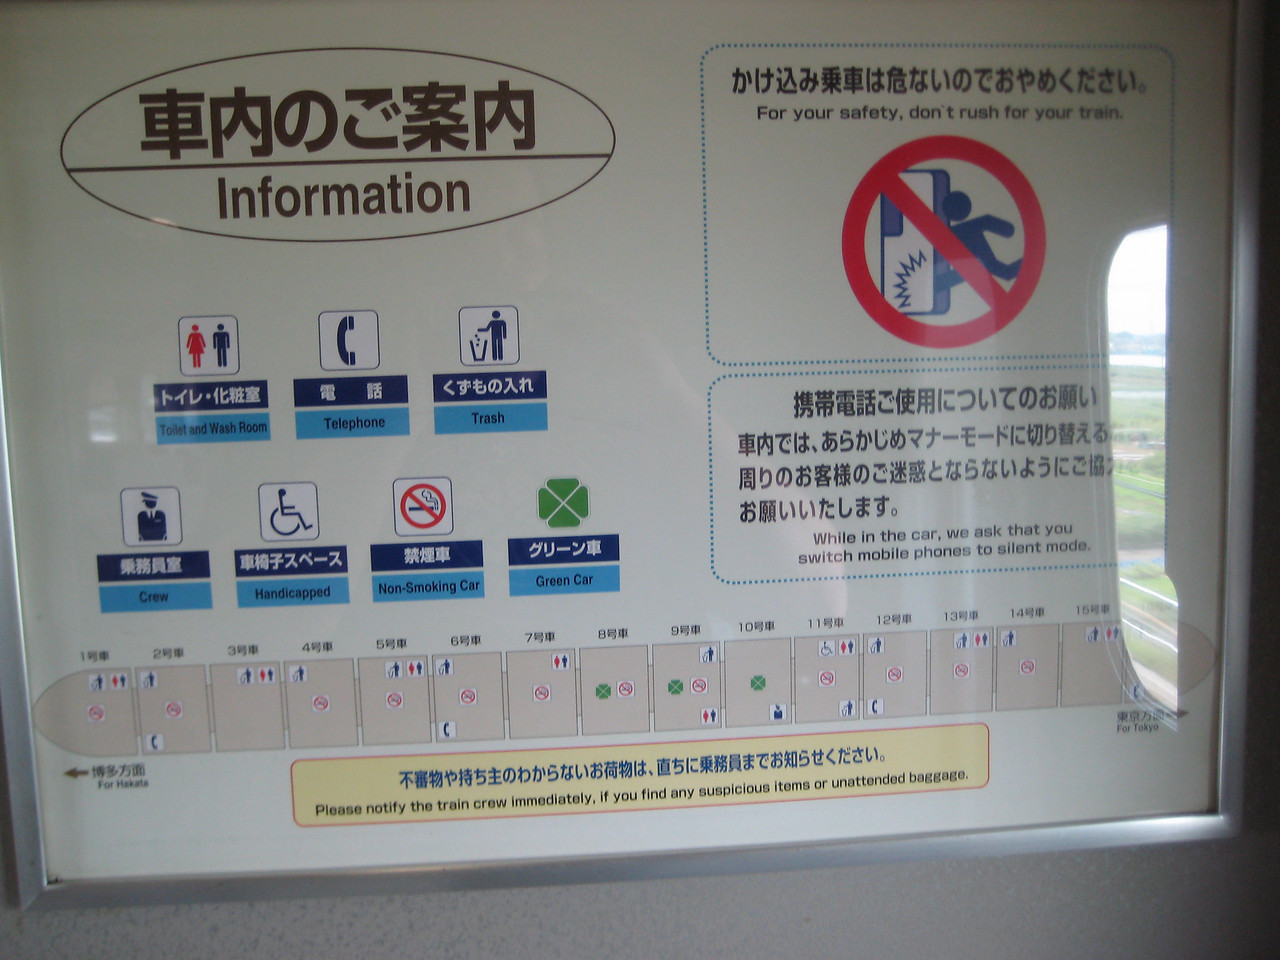 As we were riding along, we checked out the diagram of the shinkansen (bullet train). Green cars had the fancy accommodations, but our rail passes covered only the more proletarian means of travel so we were restricted to the non-green cars.